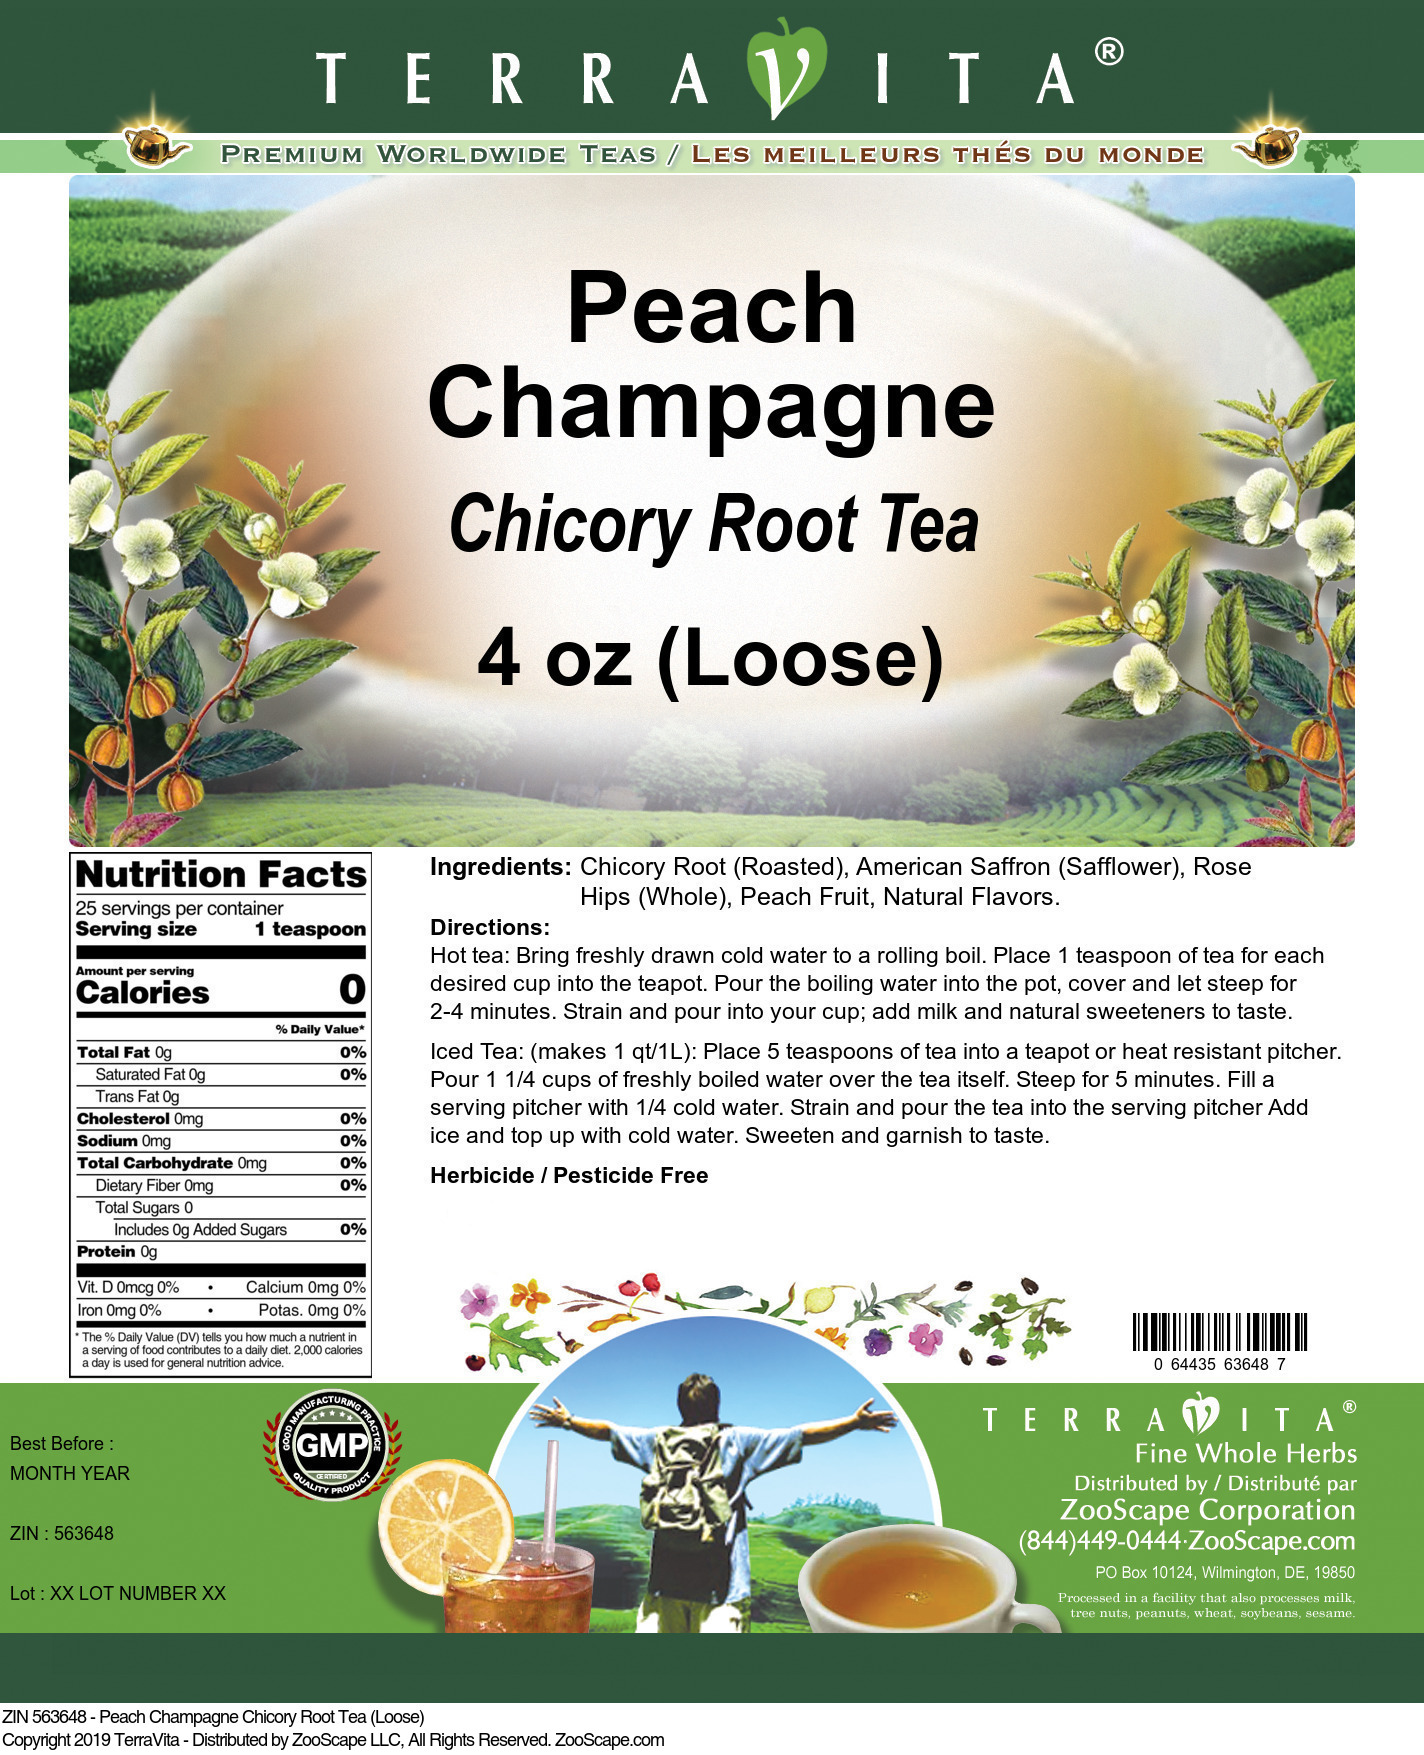 Peach Champagne Chicory Root Tea (Loose)